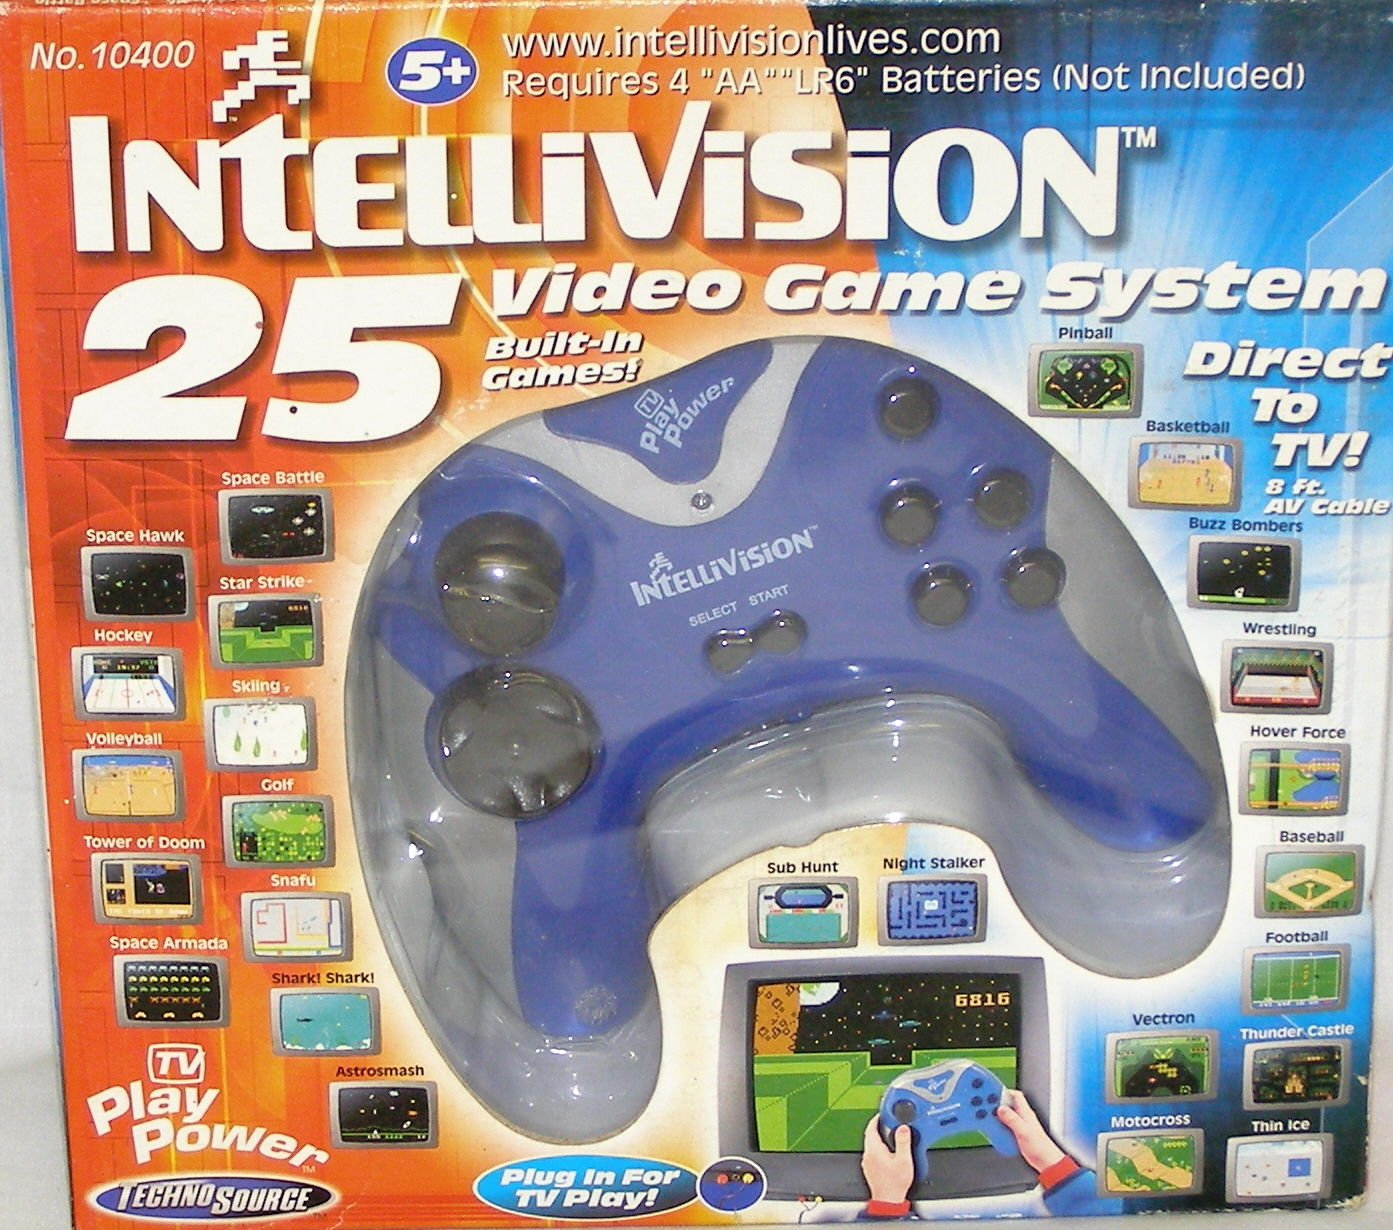 INTELLIVISION 25 VIDEO GAME SYSTEM DIRECT TO TV B00009P7J9